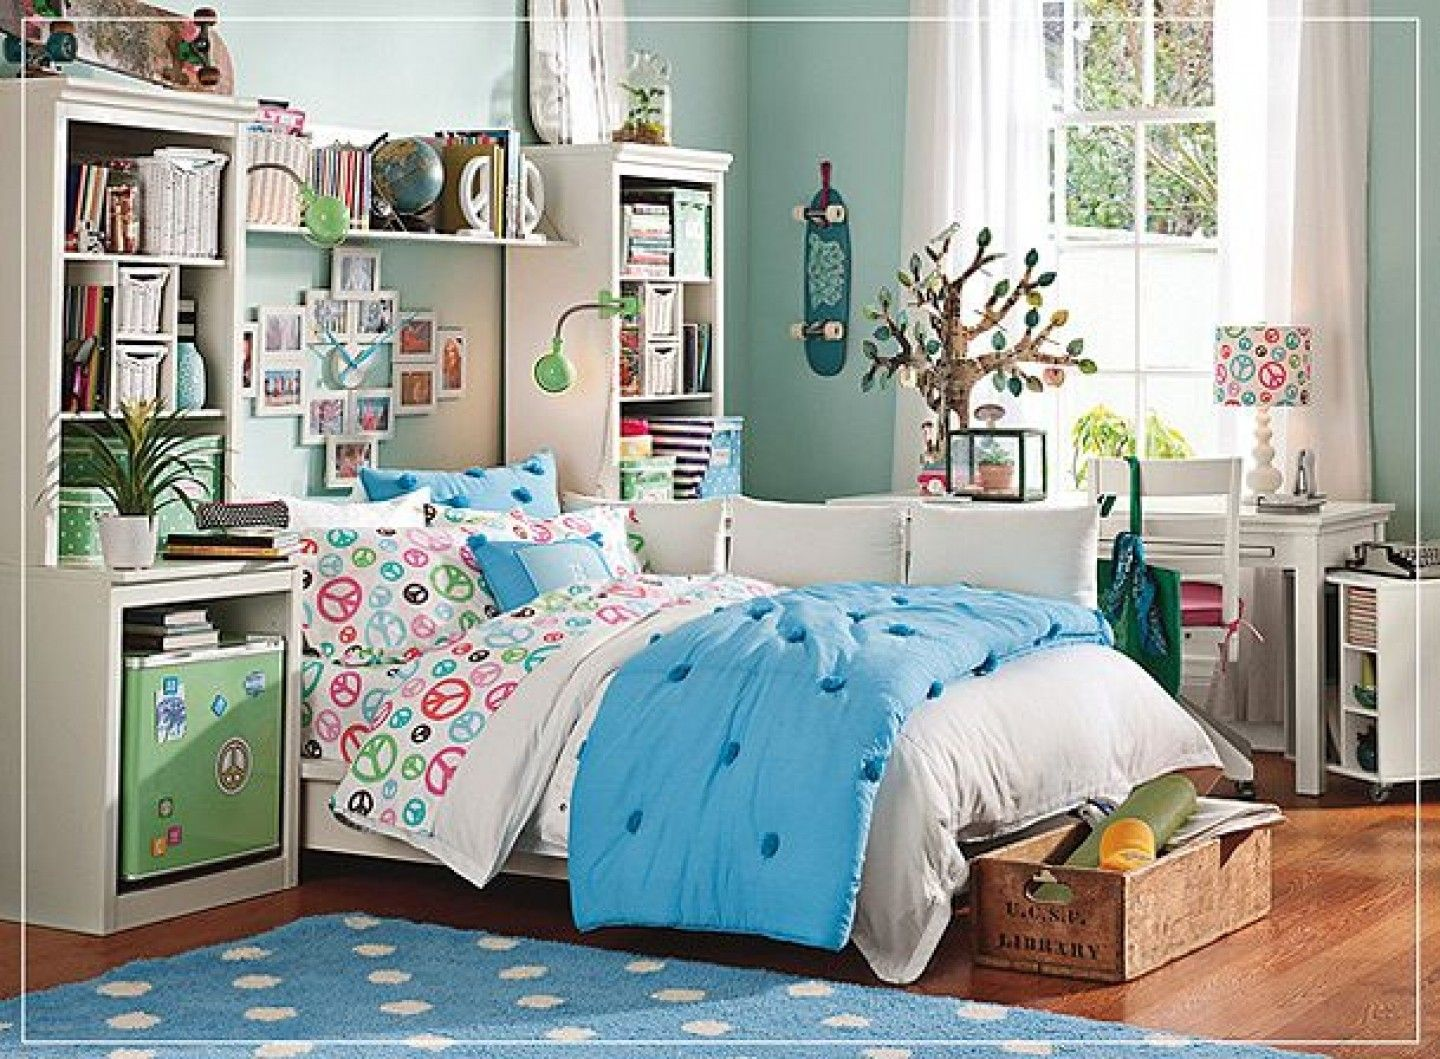 Cool Tween Bedroom Designs For Girls Nice With White Laminated Bed Frame  Bedside Table Storage Shelves